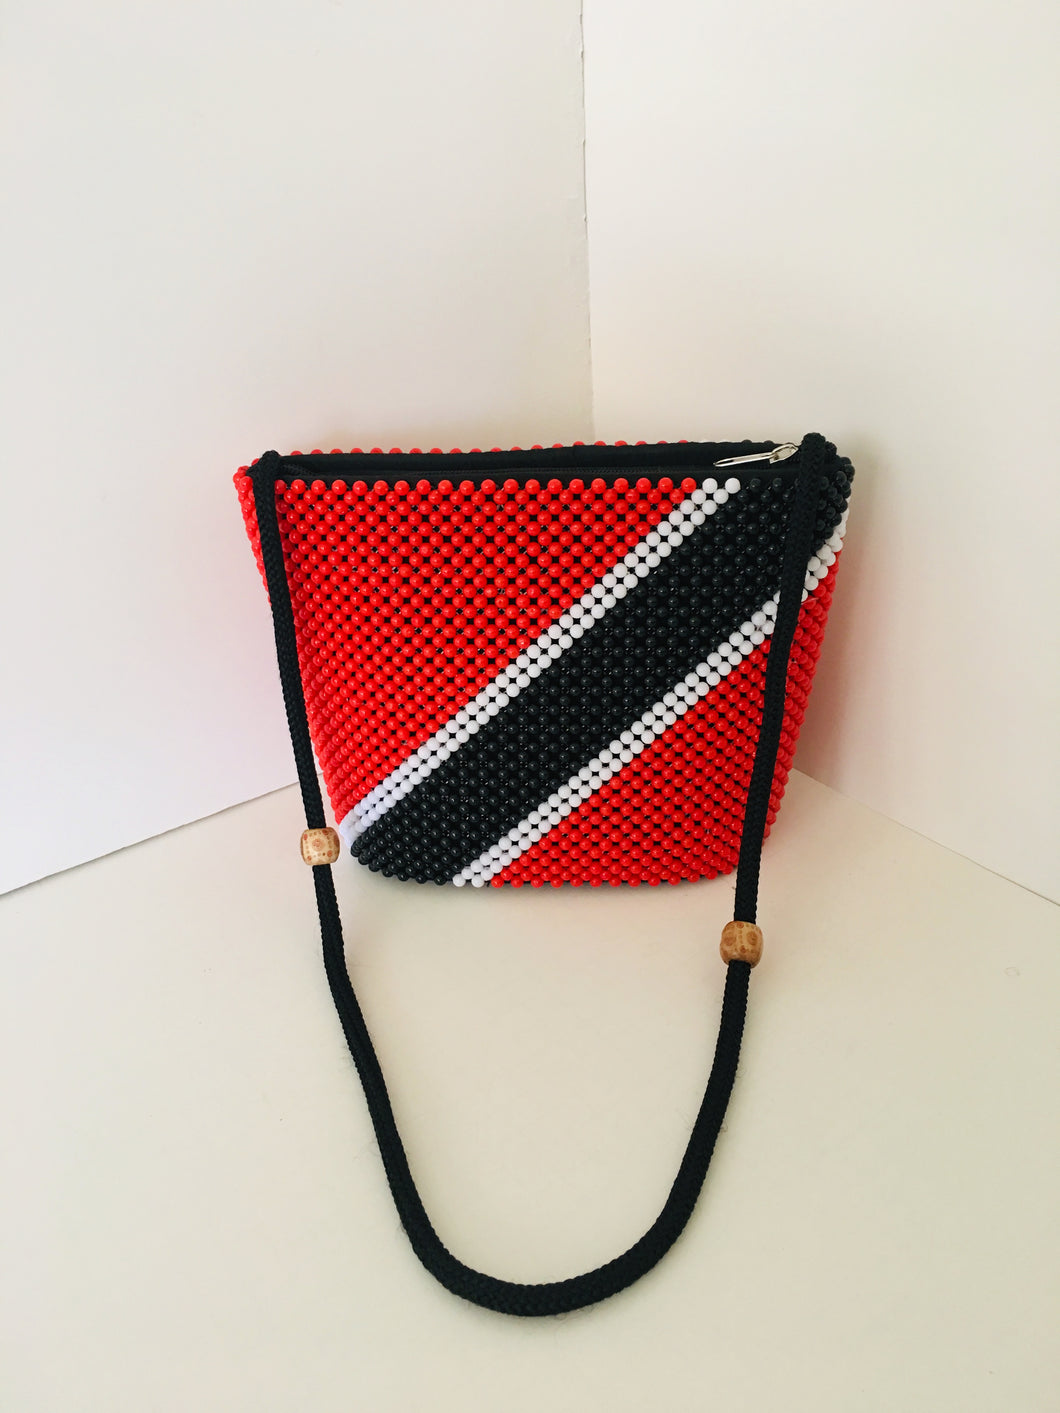 Trinidad Tobago Flag Theme HandCrafted Beaded Handbag.